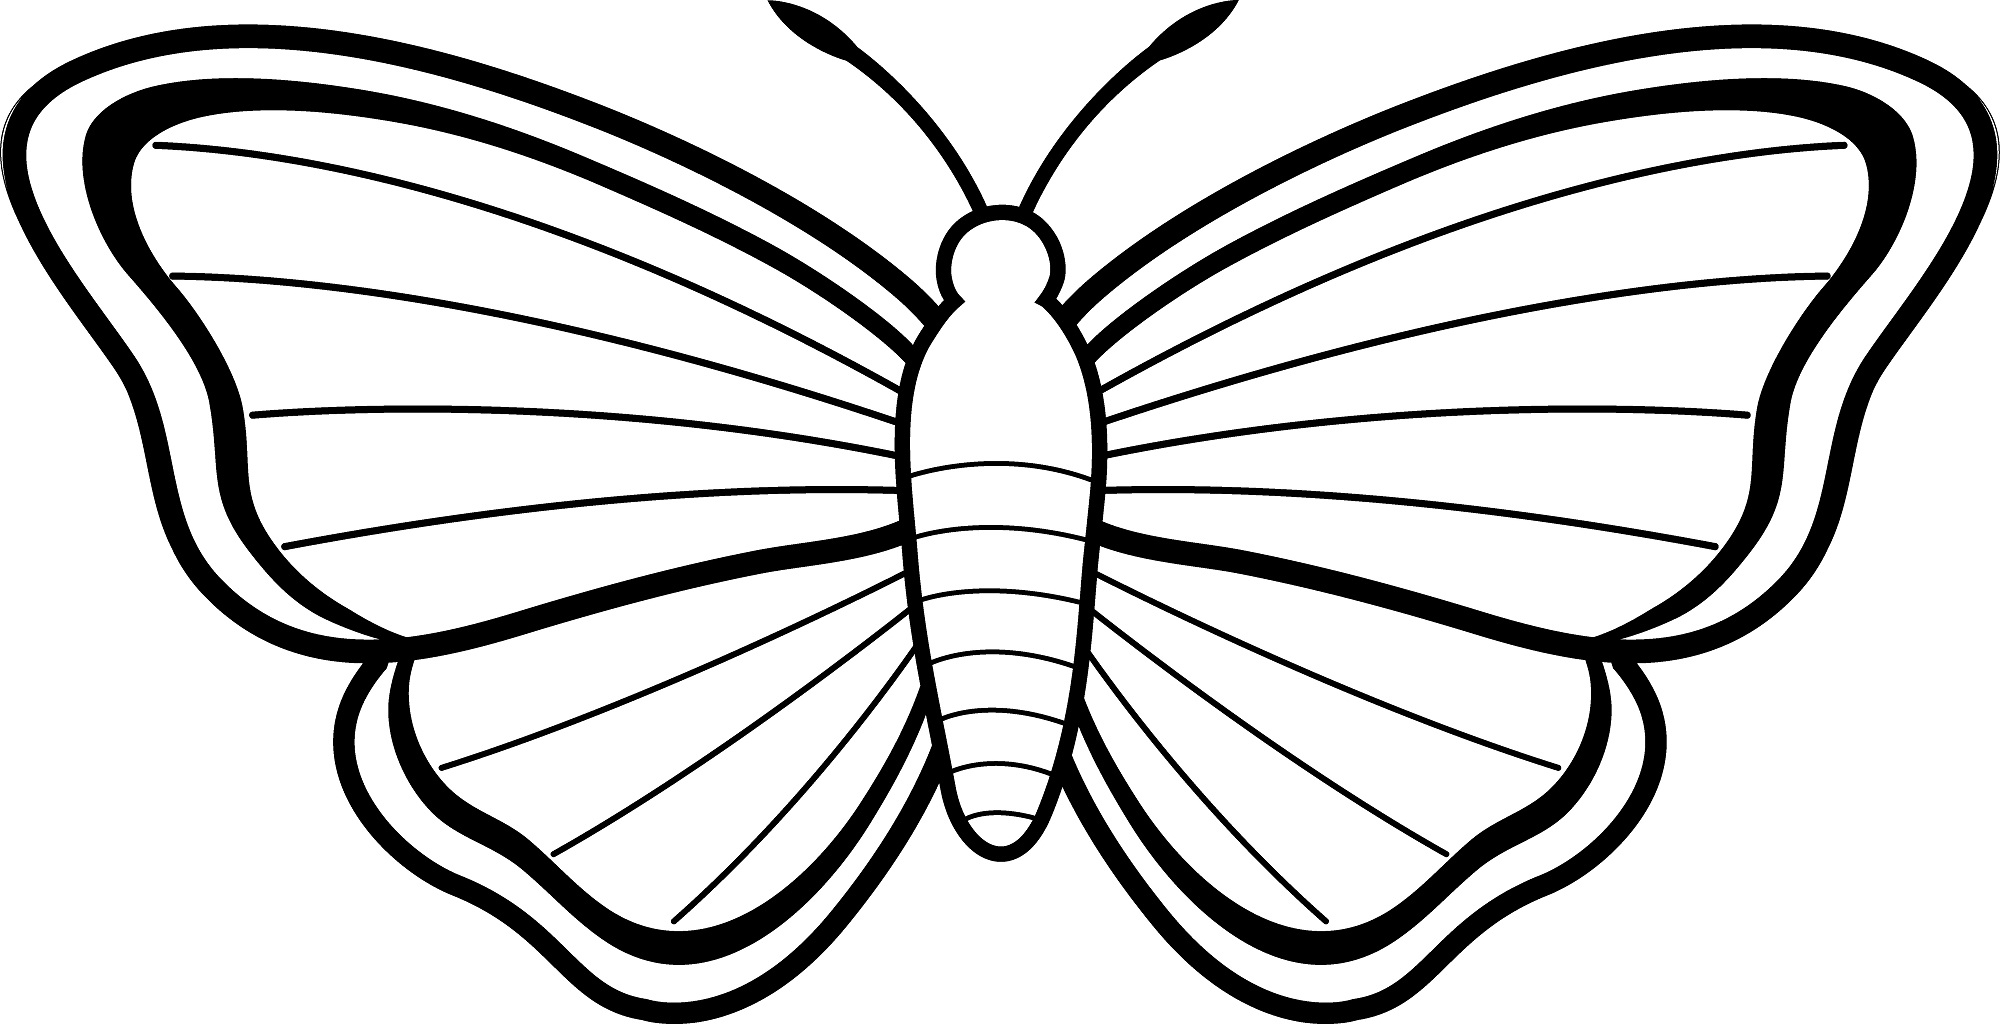 Free Printable Butterfly Coloring Pages For Kids - photo#4